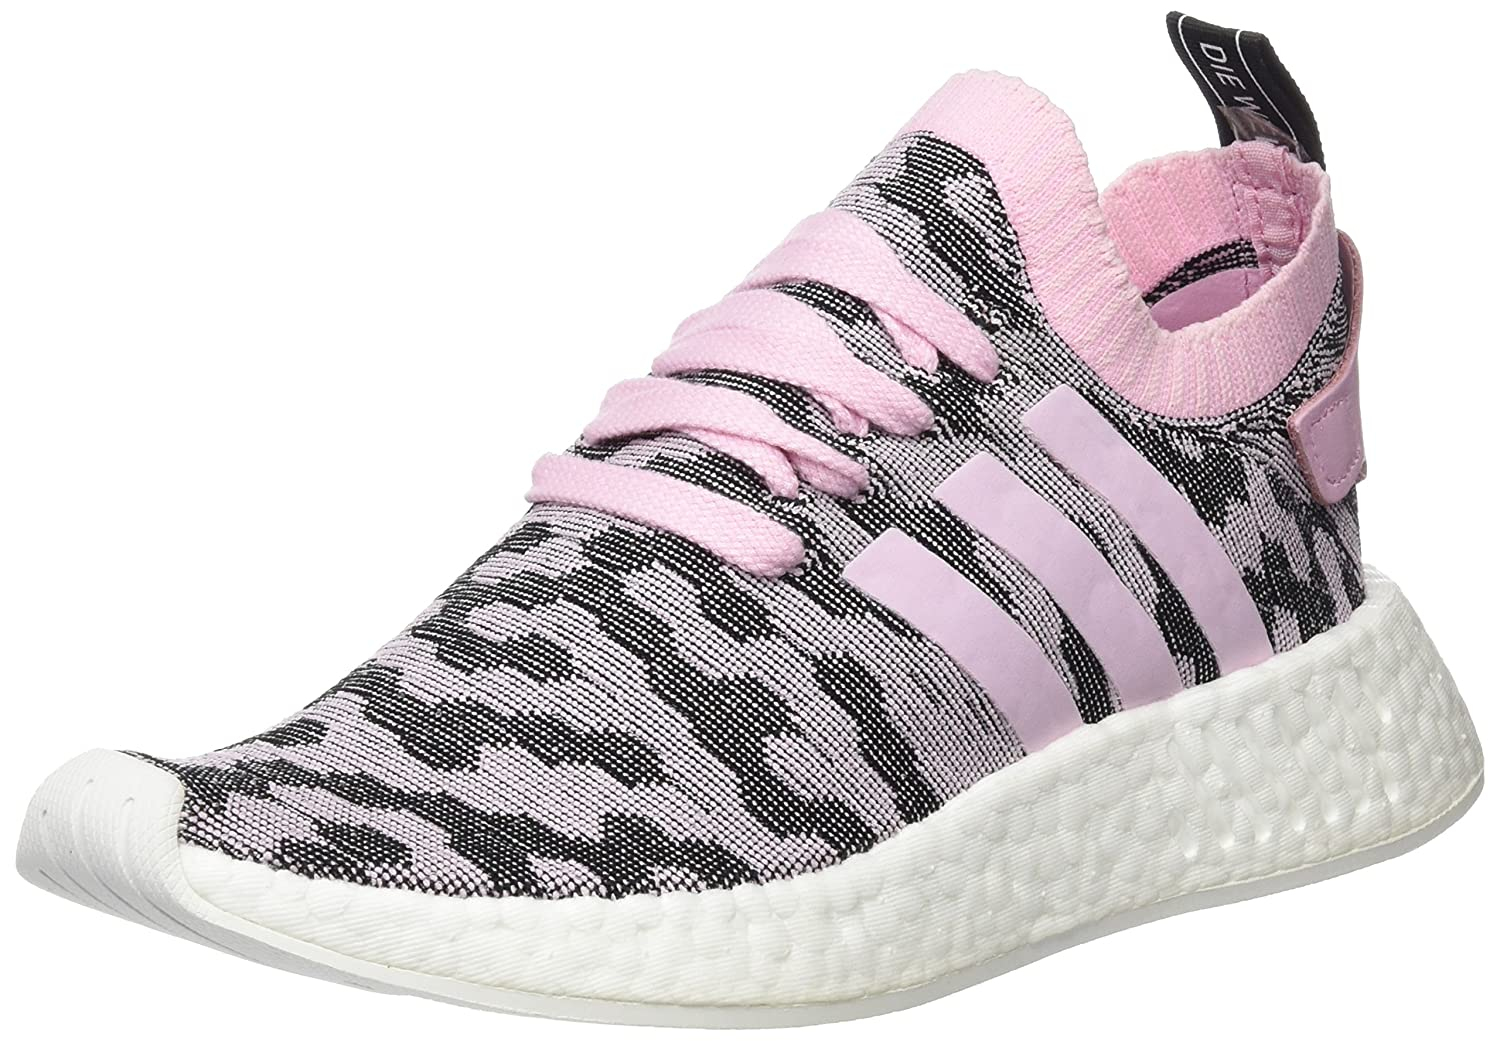 meet 24db0 5361e Amazon.com | adidas Womens NMD R2 Primeknit Wonder Pink ...